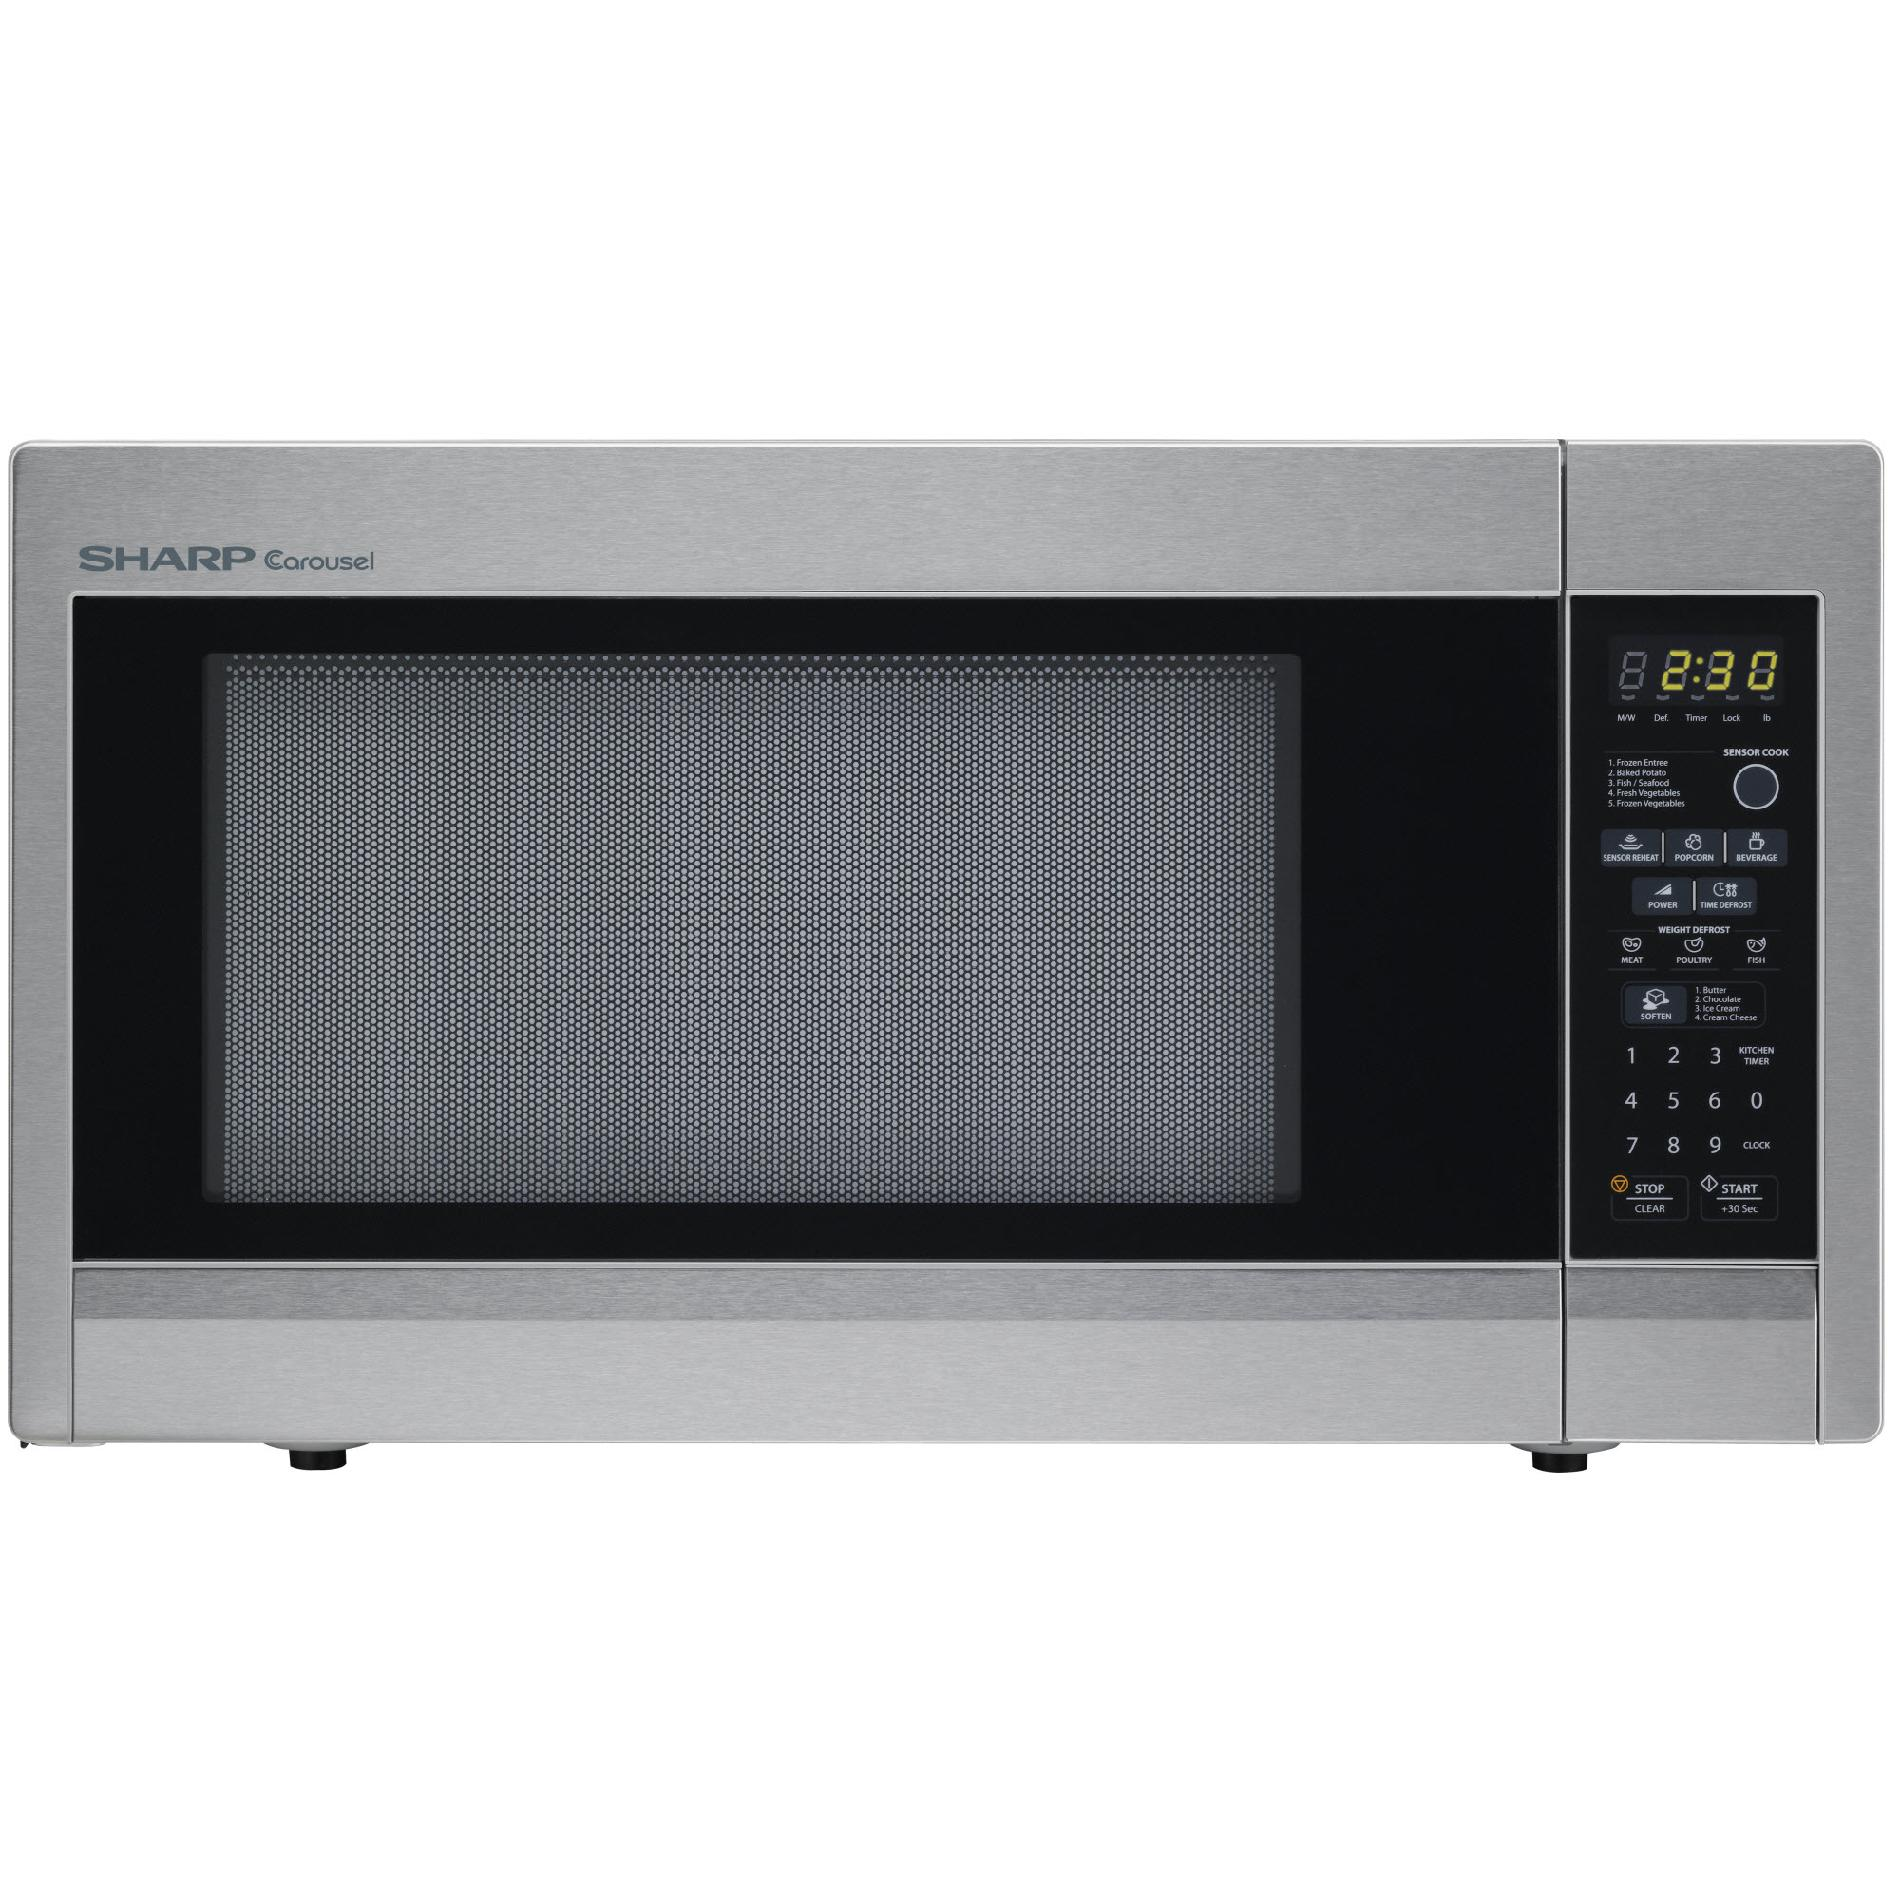 Sharp 1.8 cu. ft. Countertop Microwave